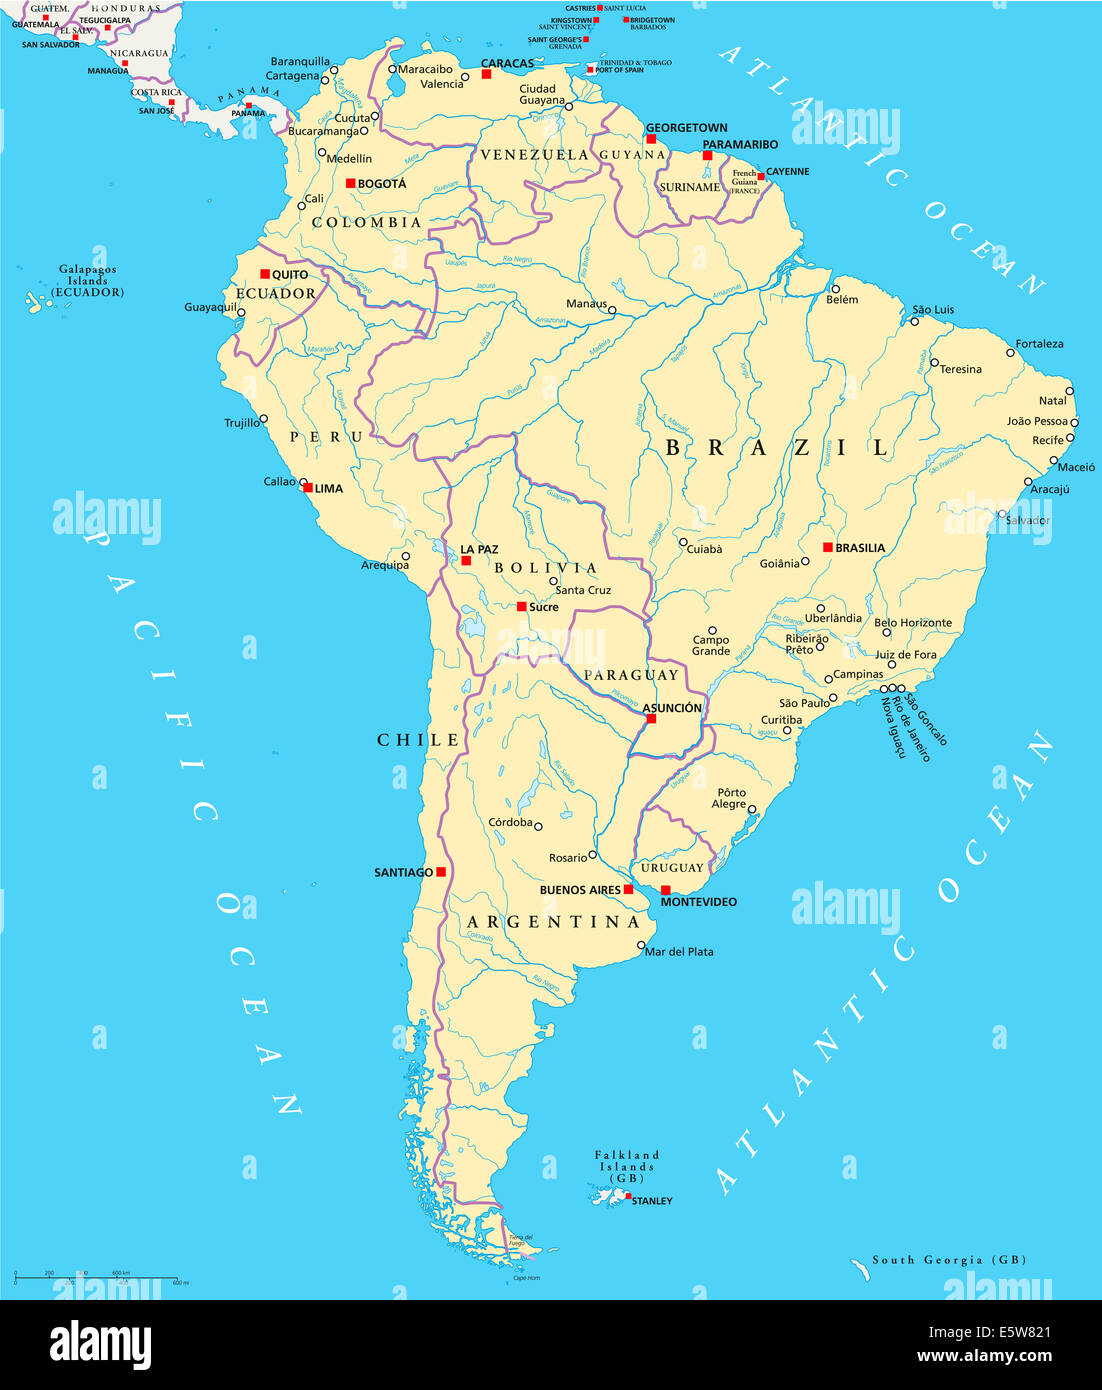 South America Political Map with single states, capitals, important ...